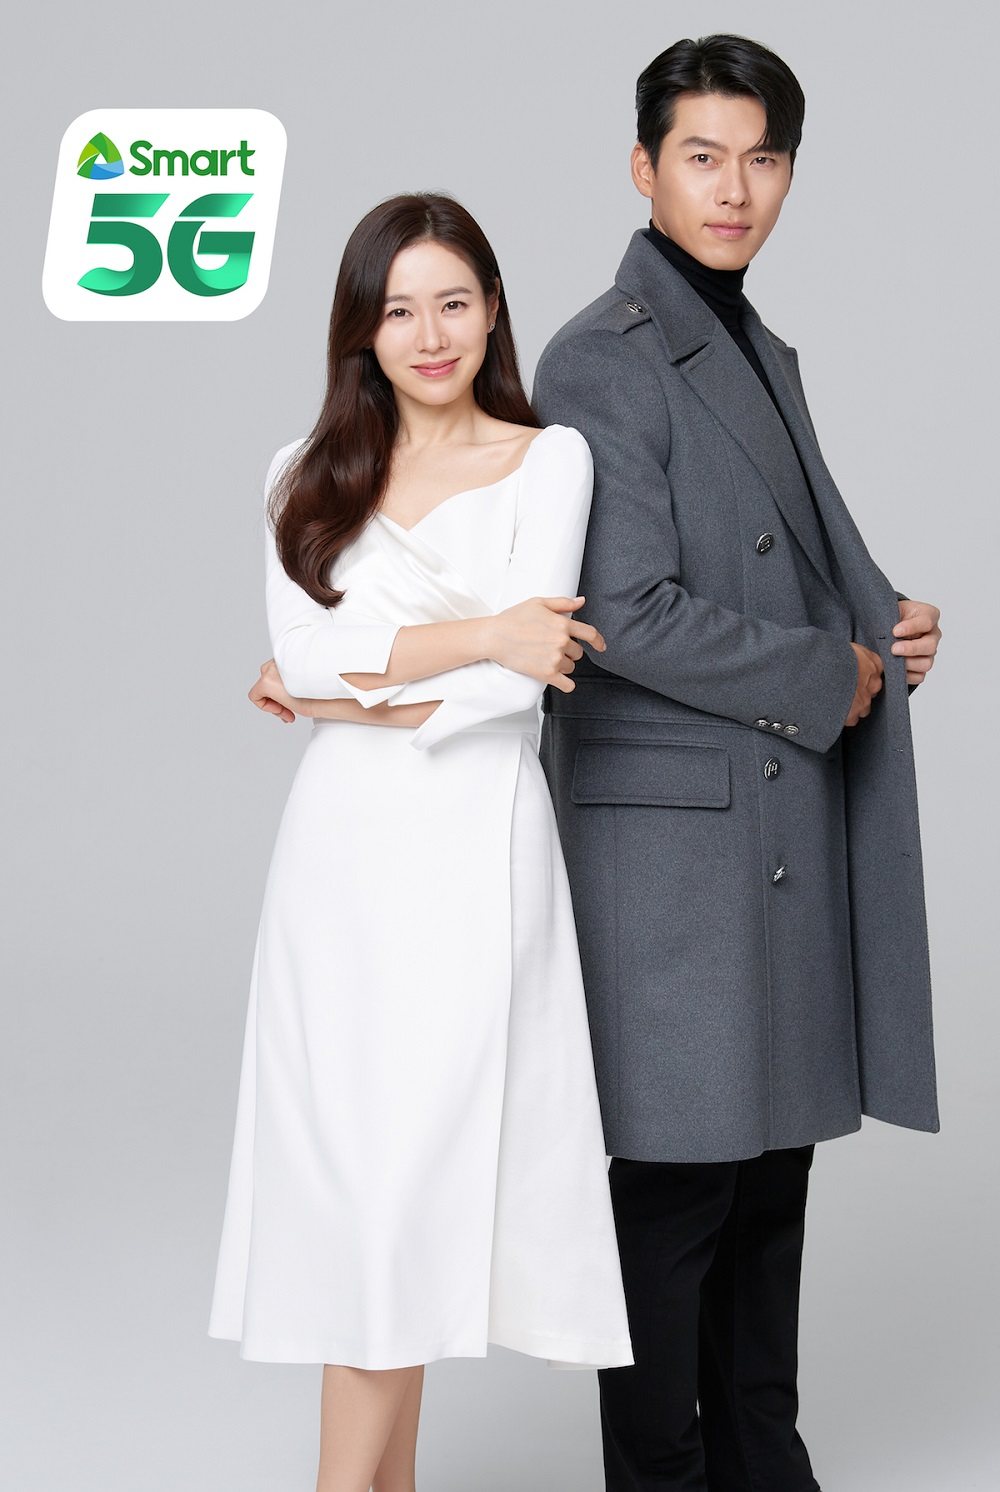 Smart launches new TVC starring CLOY's Hyun Bin, Son Ye Jin